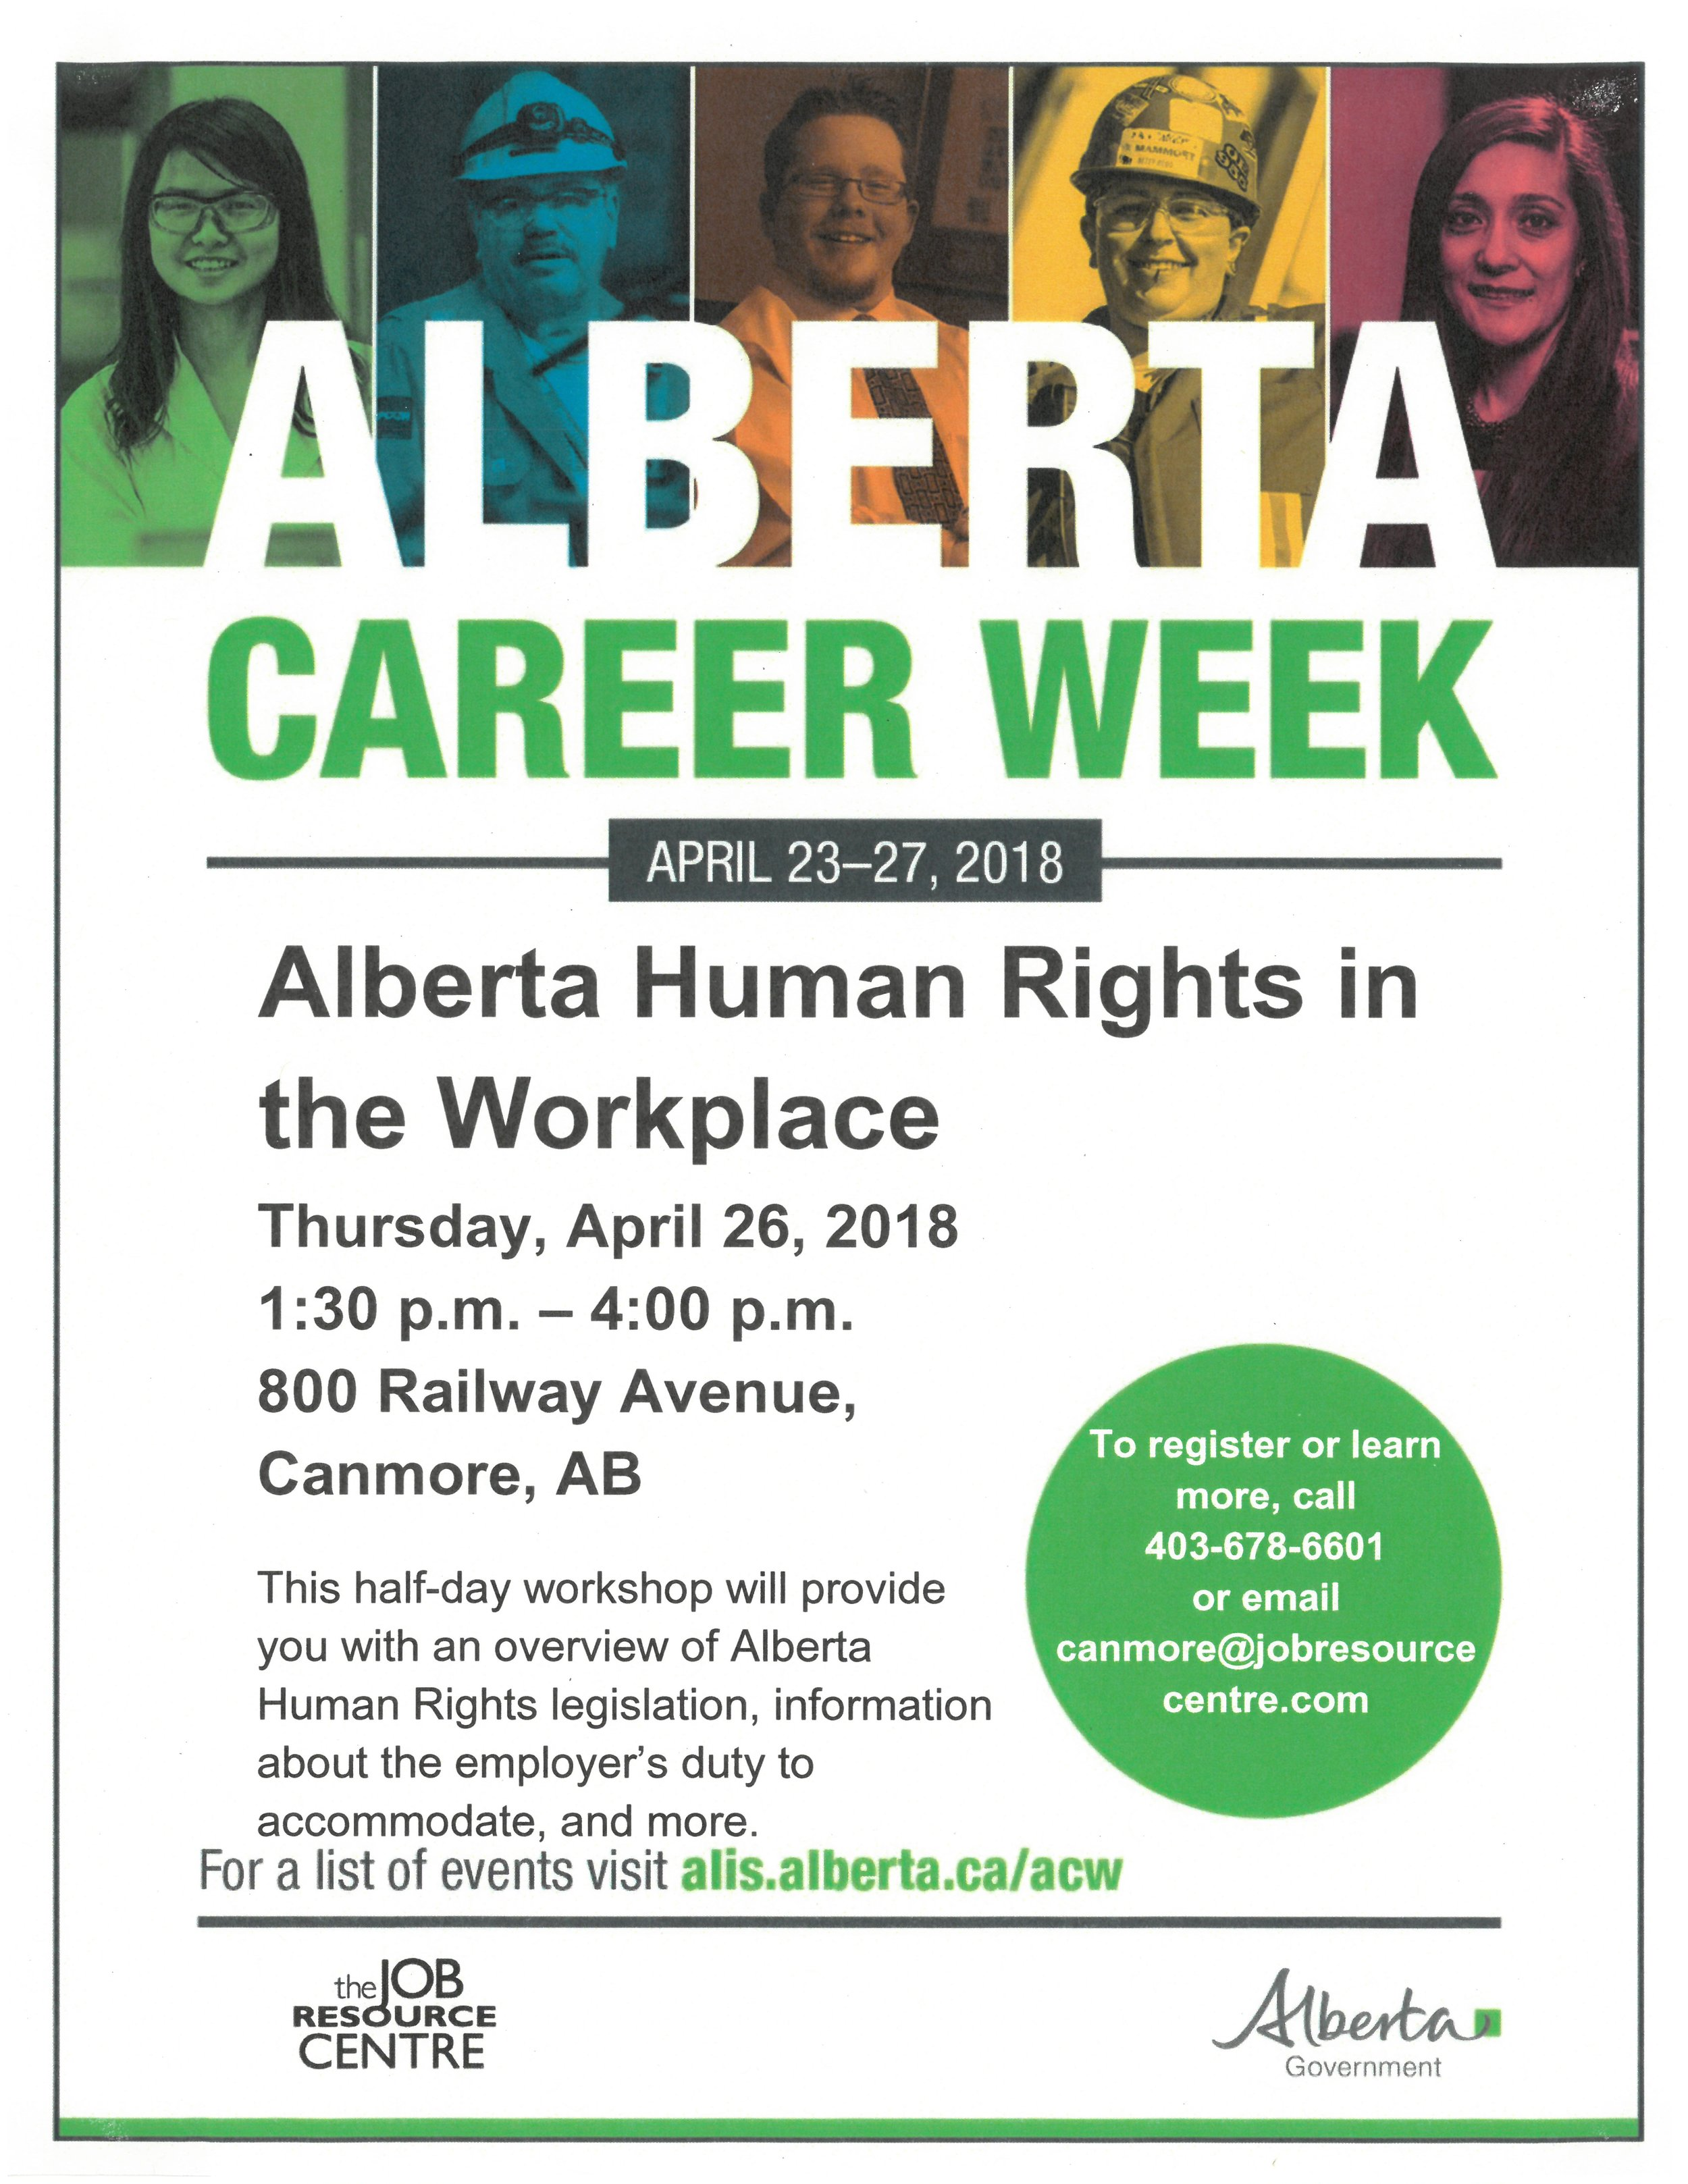 Alberta Human Rights in the Workplace.jpg